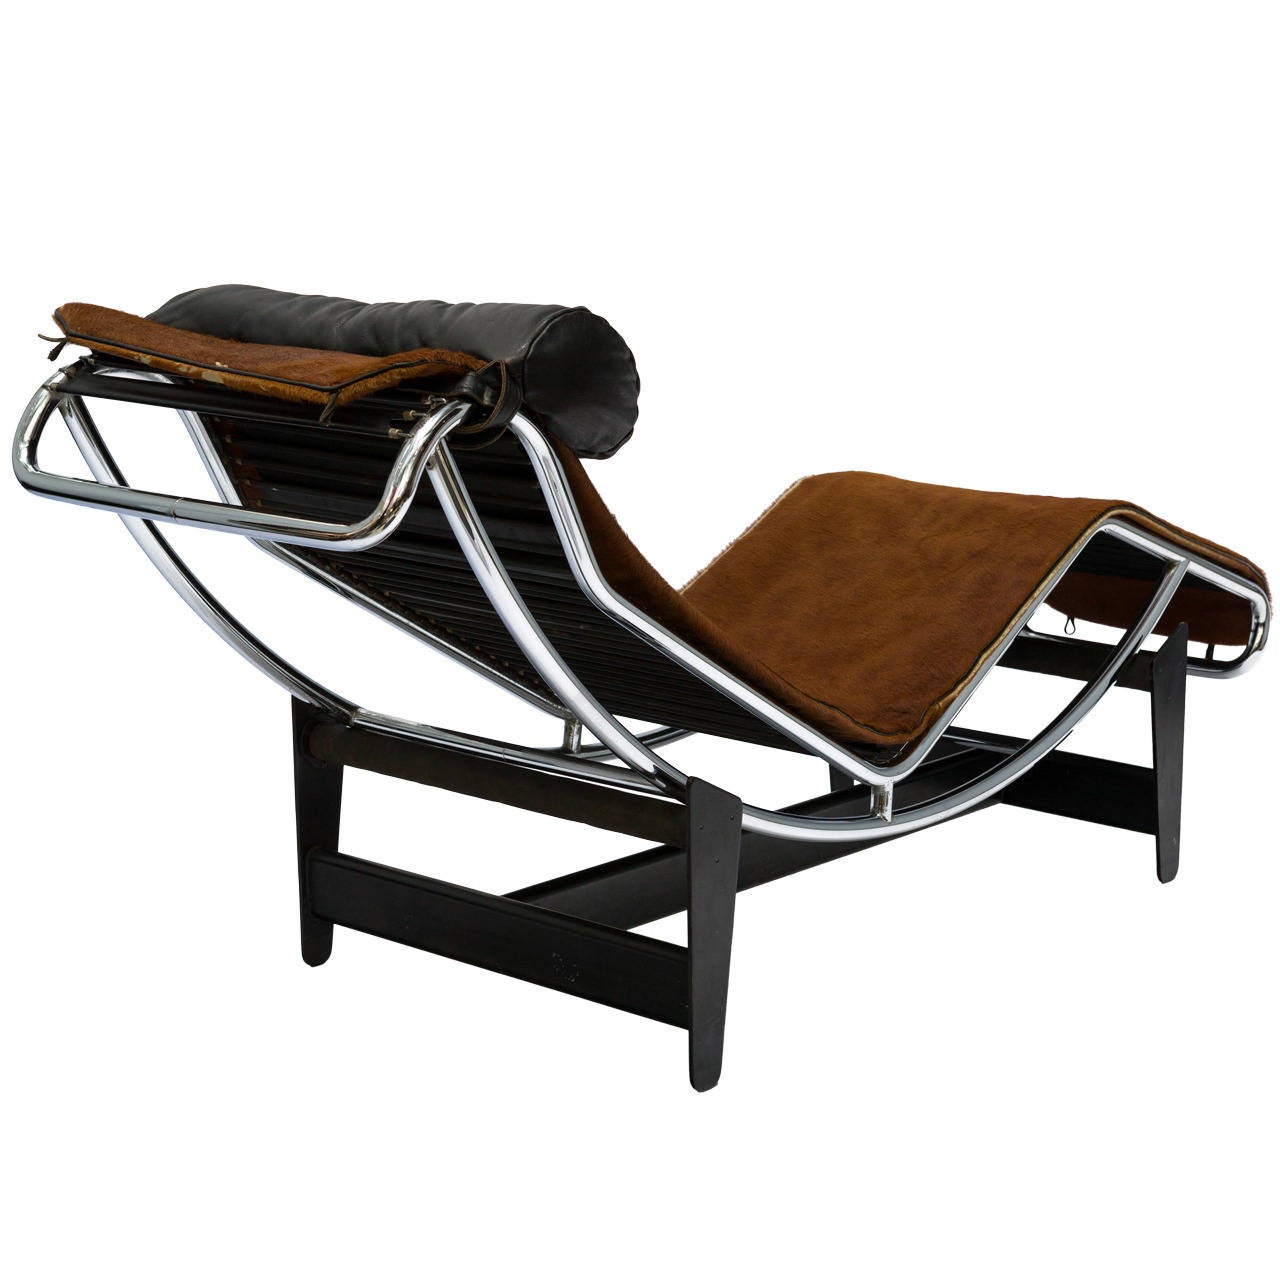 le corbusier lc 4 buy cassina le corbusier lc4 chaise longue online at lc4 sofas and armchairs. Black Bedroom Furniture Sets. Home Design Ideas